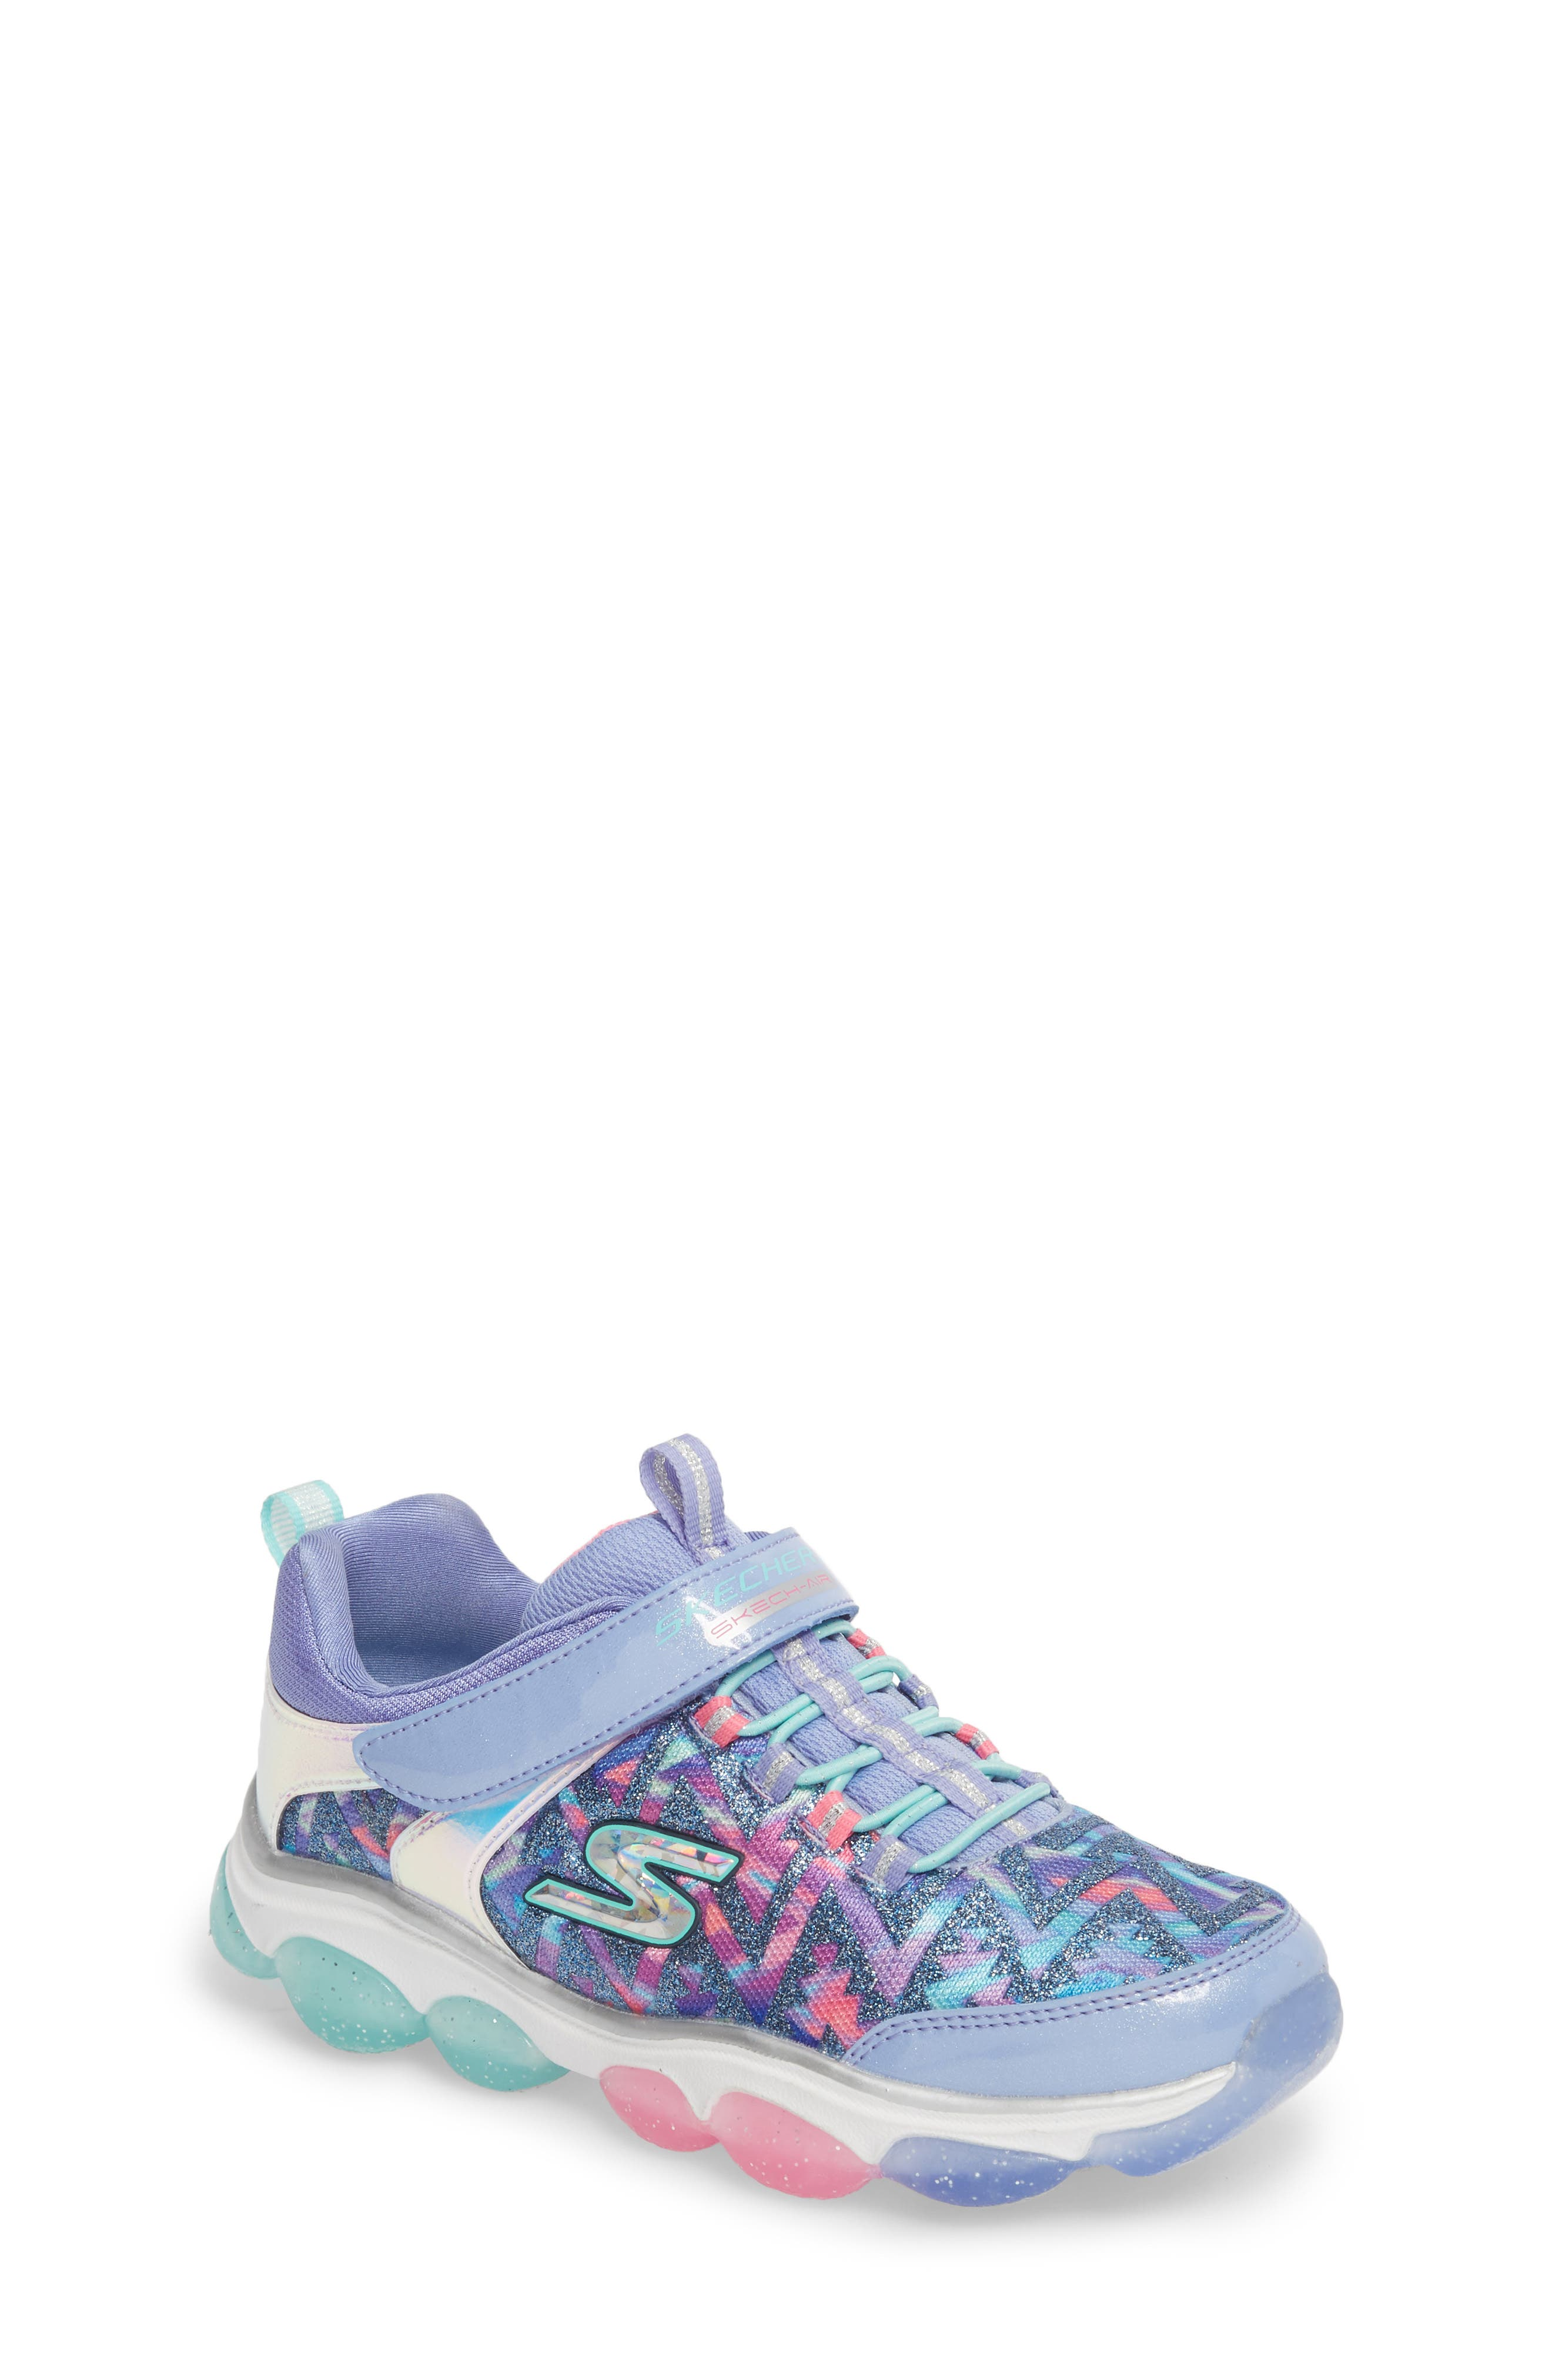 Skech-Air Groove Glitter N Go Sneakers,                             Main thumbnail 1, color,                             500